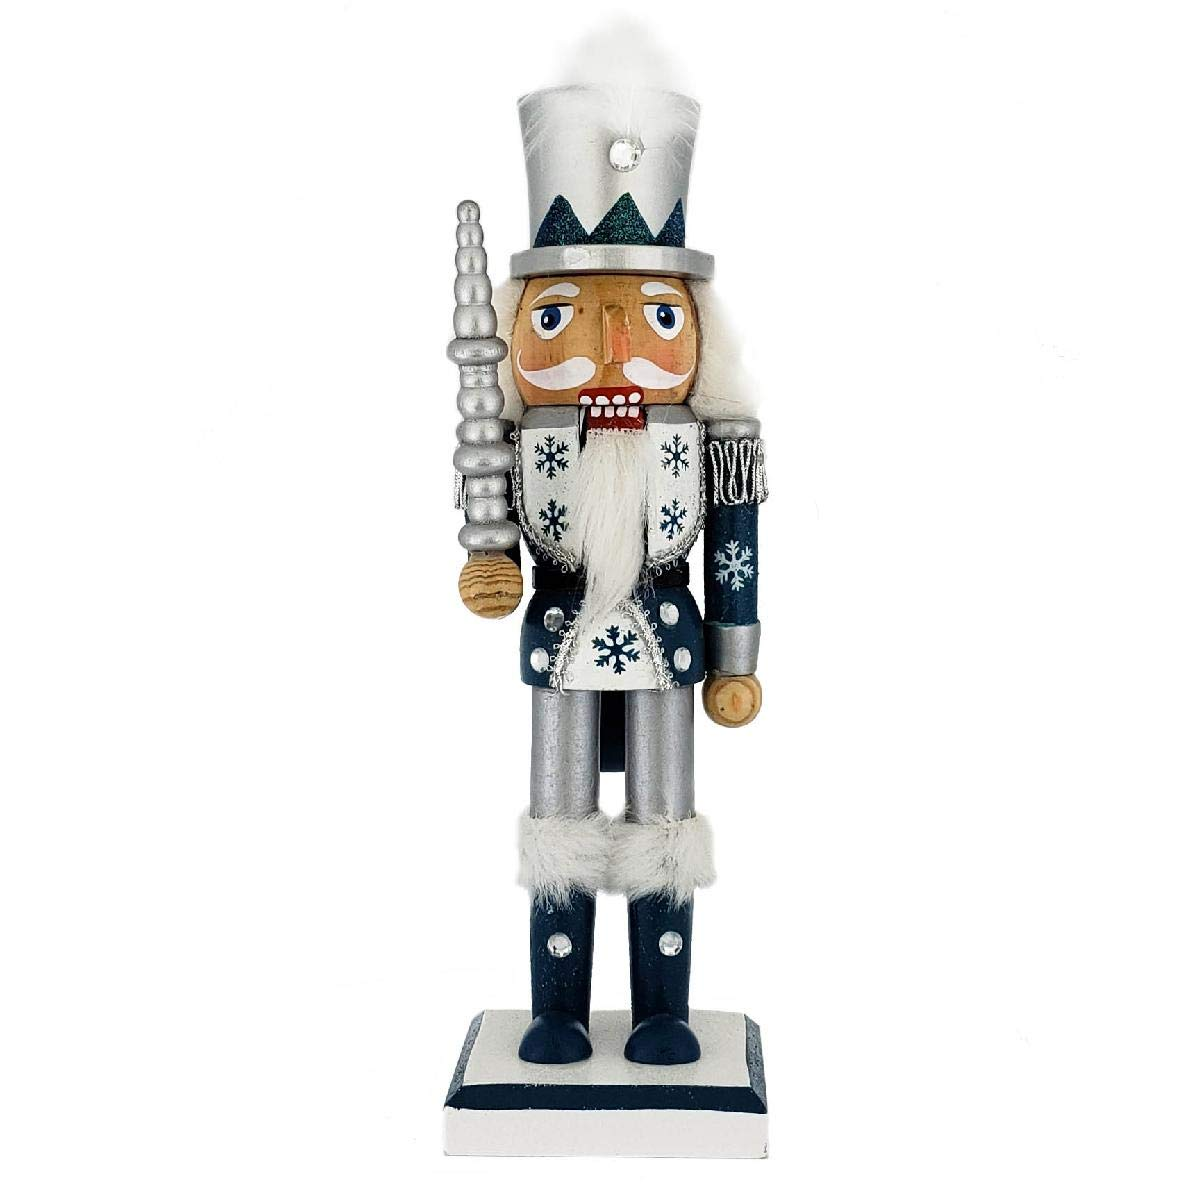 Nutcracker Ballet Gifts Christmas Holiday Wooden Snow Fantasy Nutcracker Figure Soldier- Blue White and Silver with Hand Painted Snowflake Uniform, Silver Sword, Top Hat with Feather, Large, 10 Inch